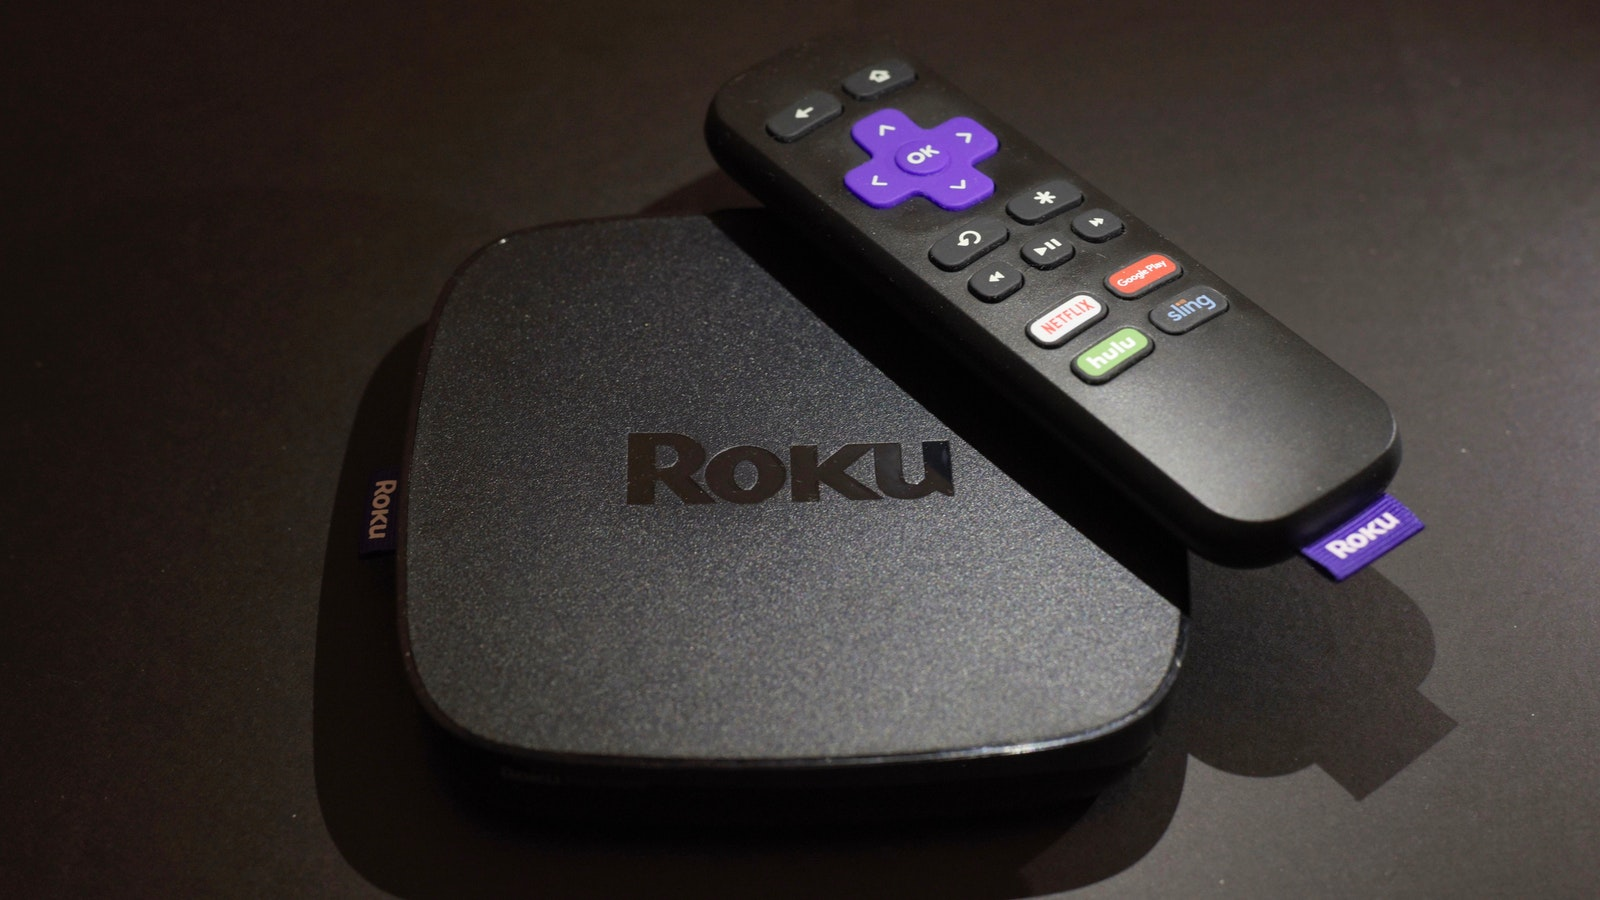 A Roku streaming device and remote control. Photo by AP